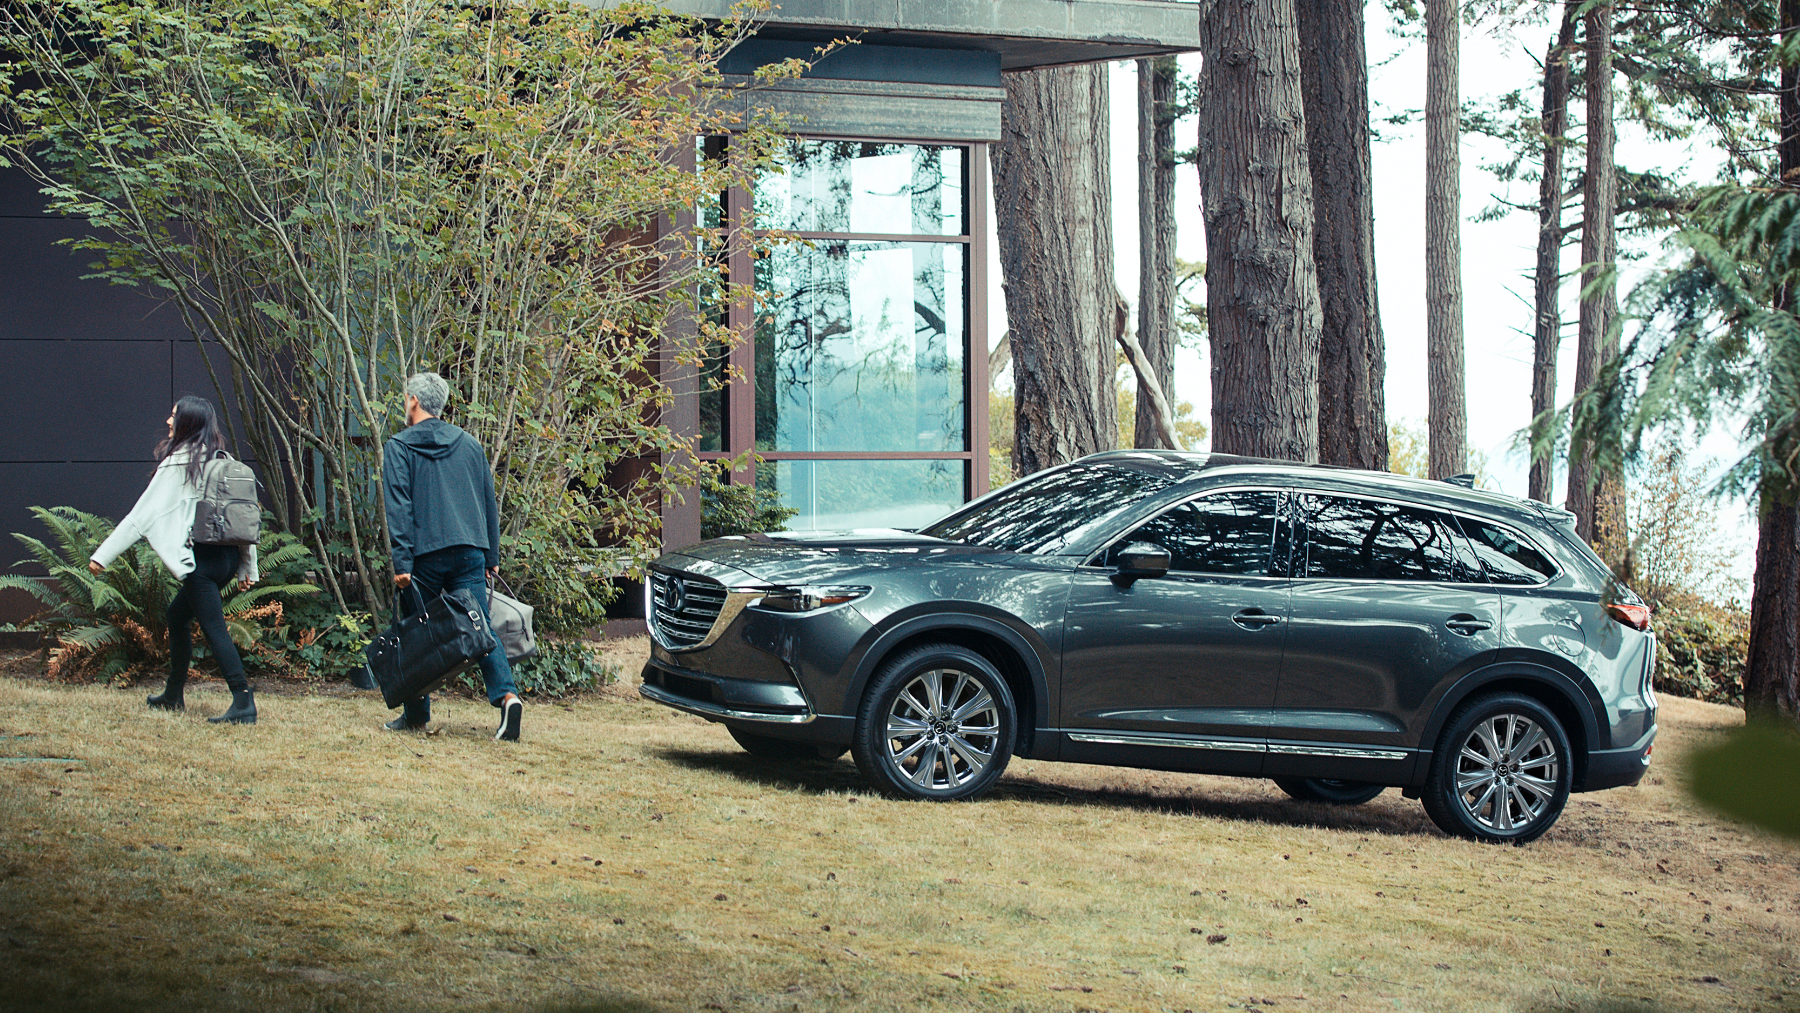 Mazda CX-9 parked countryside